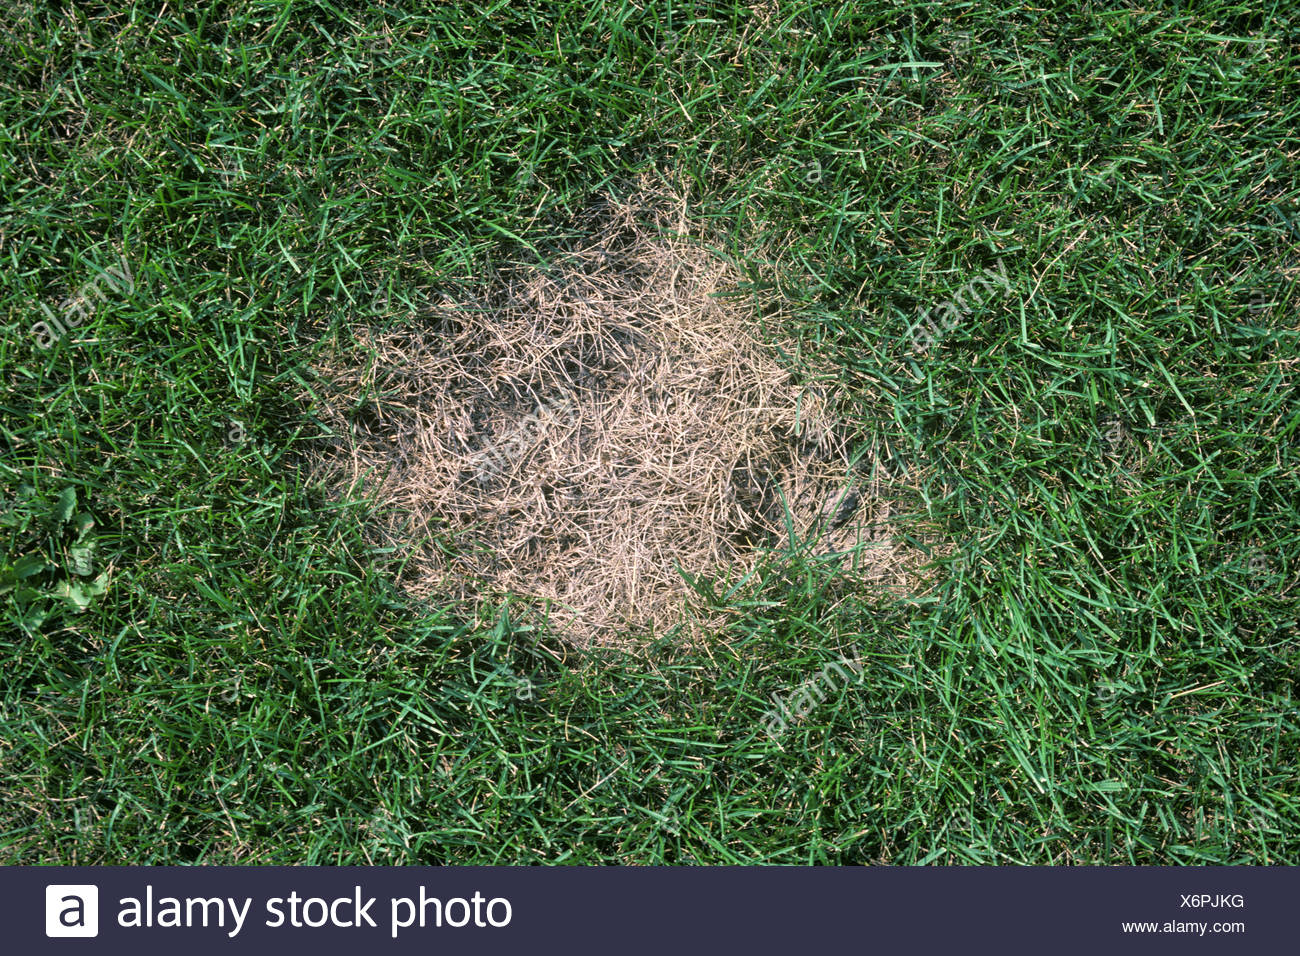 Summer patch Magnaporthe poae in Poa spp lawn gras - Stock Image